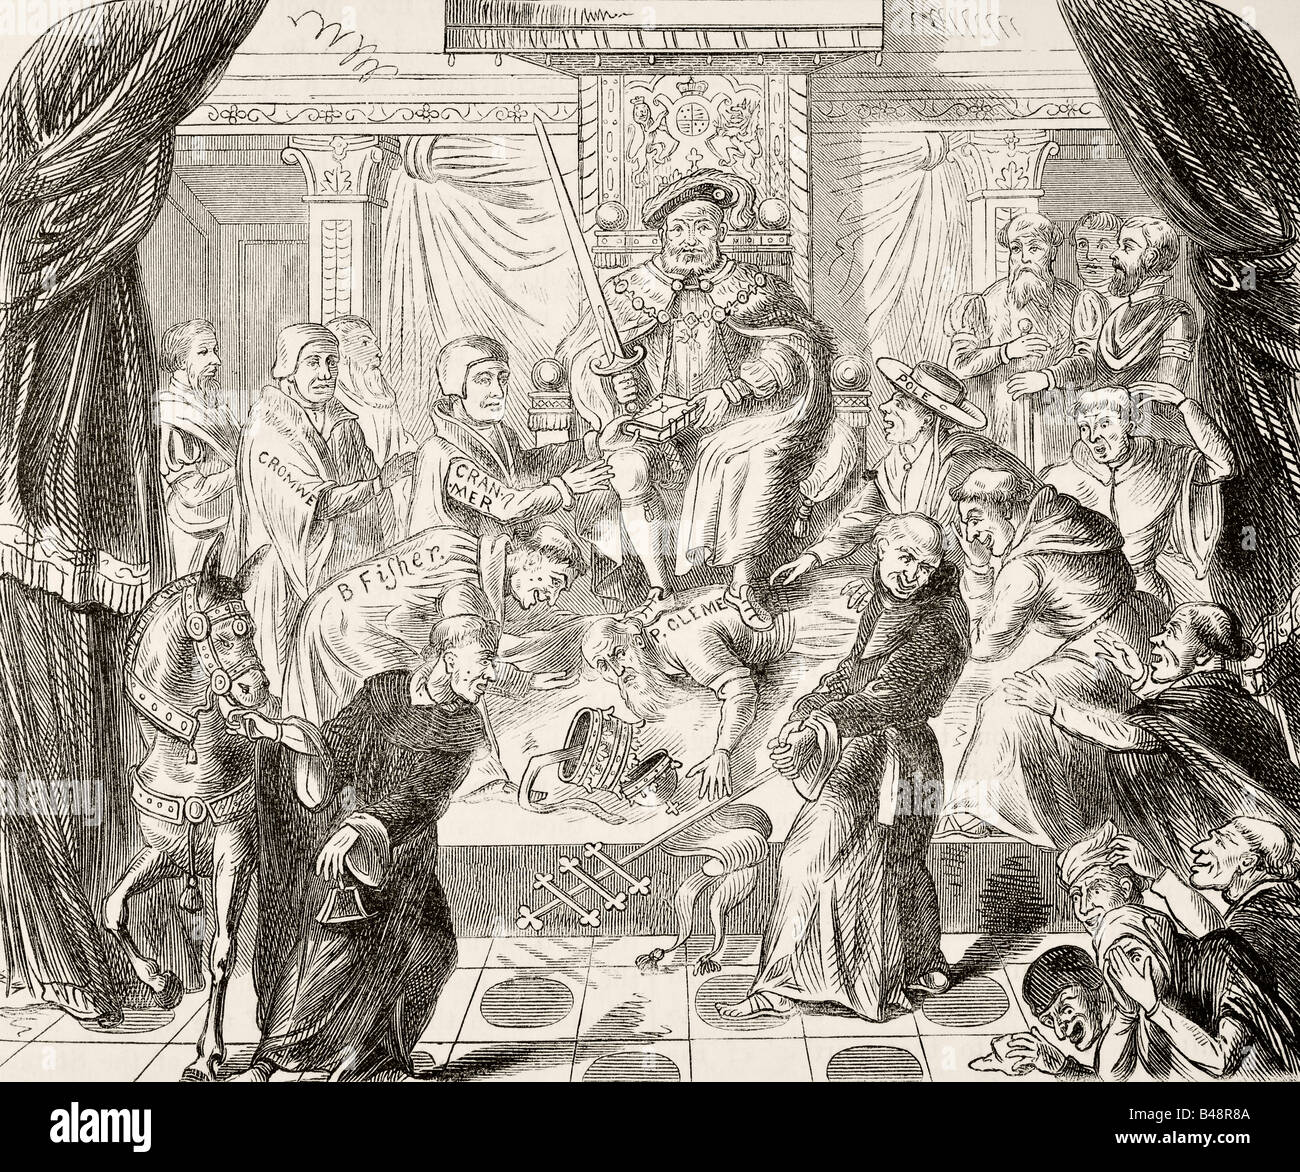 Allegorical picture of King Henry VIII of England trampling on Pope Clement VII - Stock Image